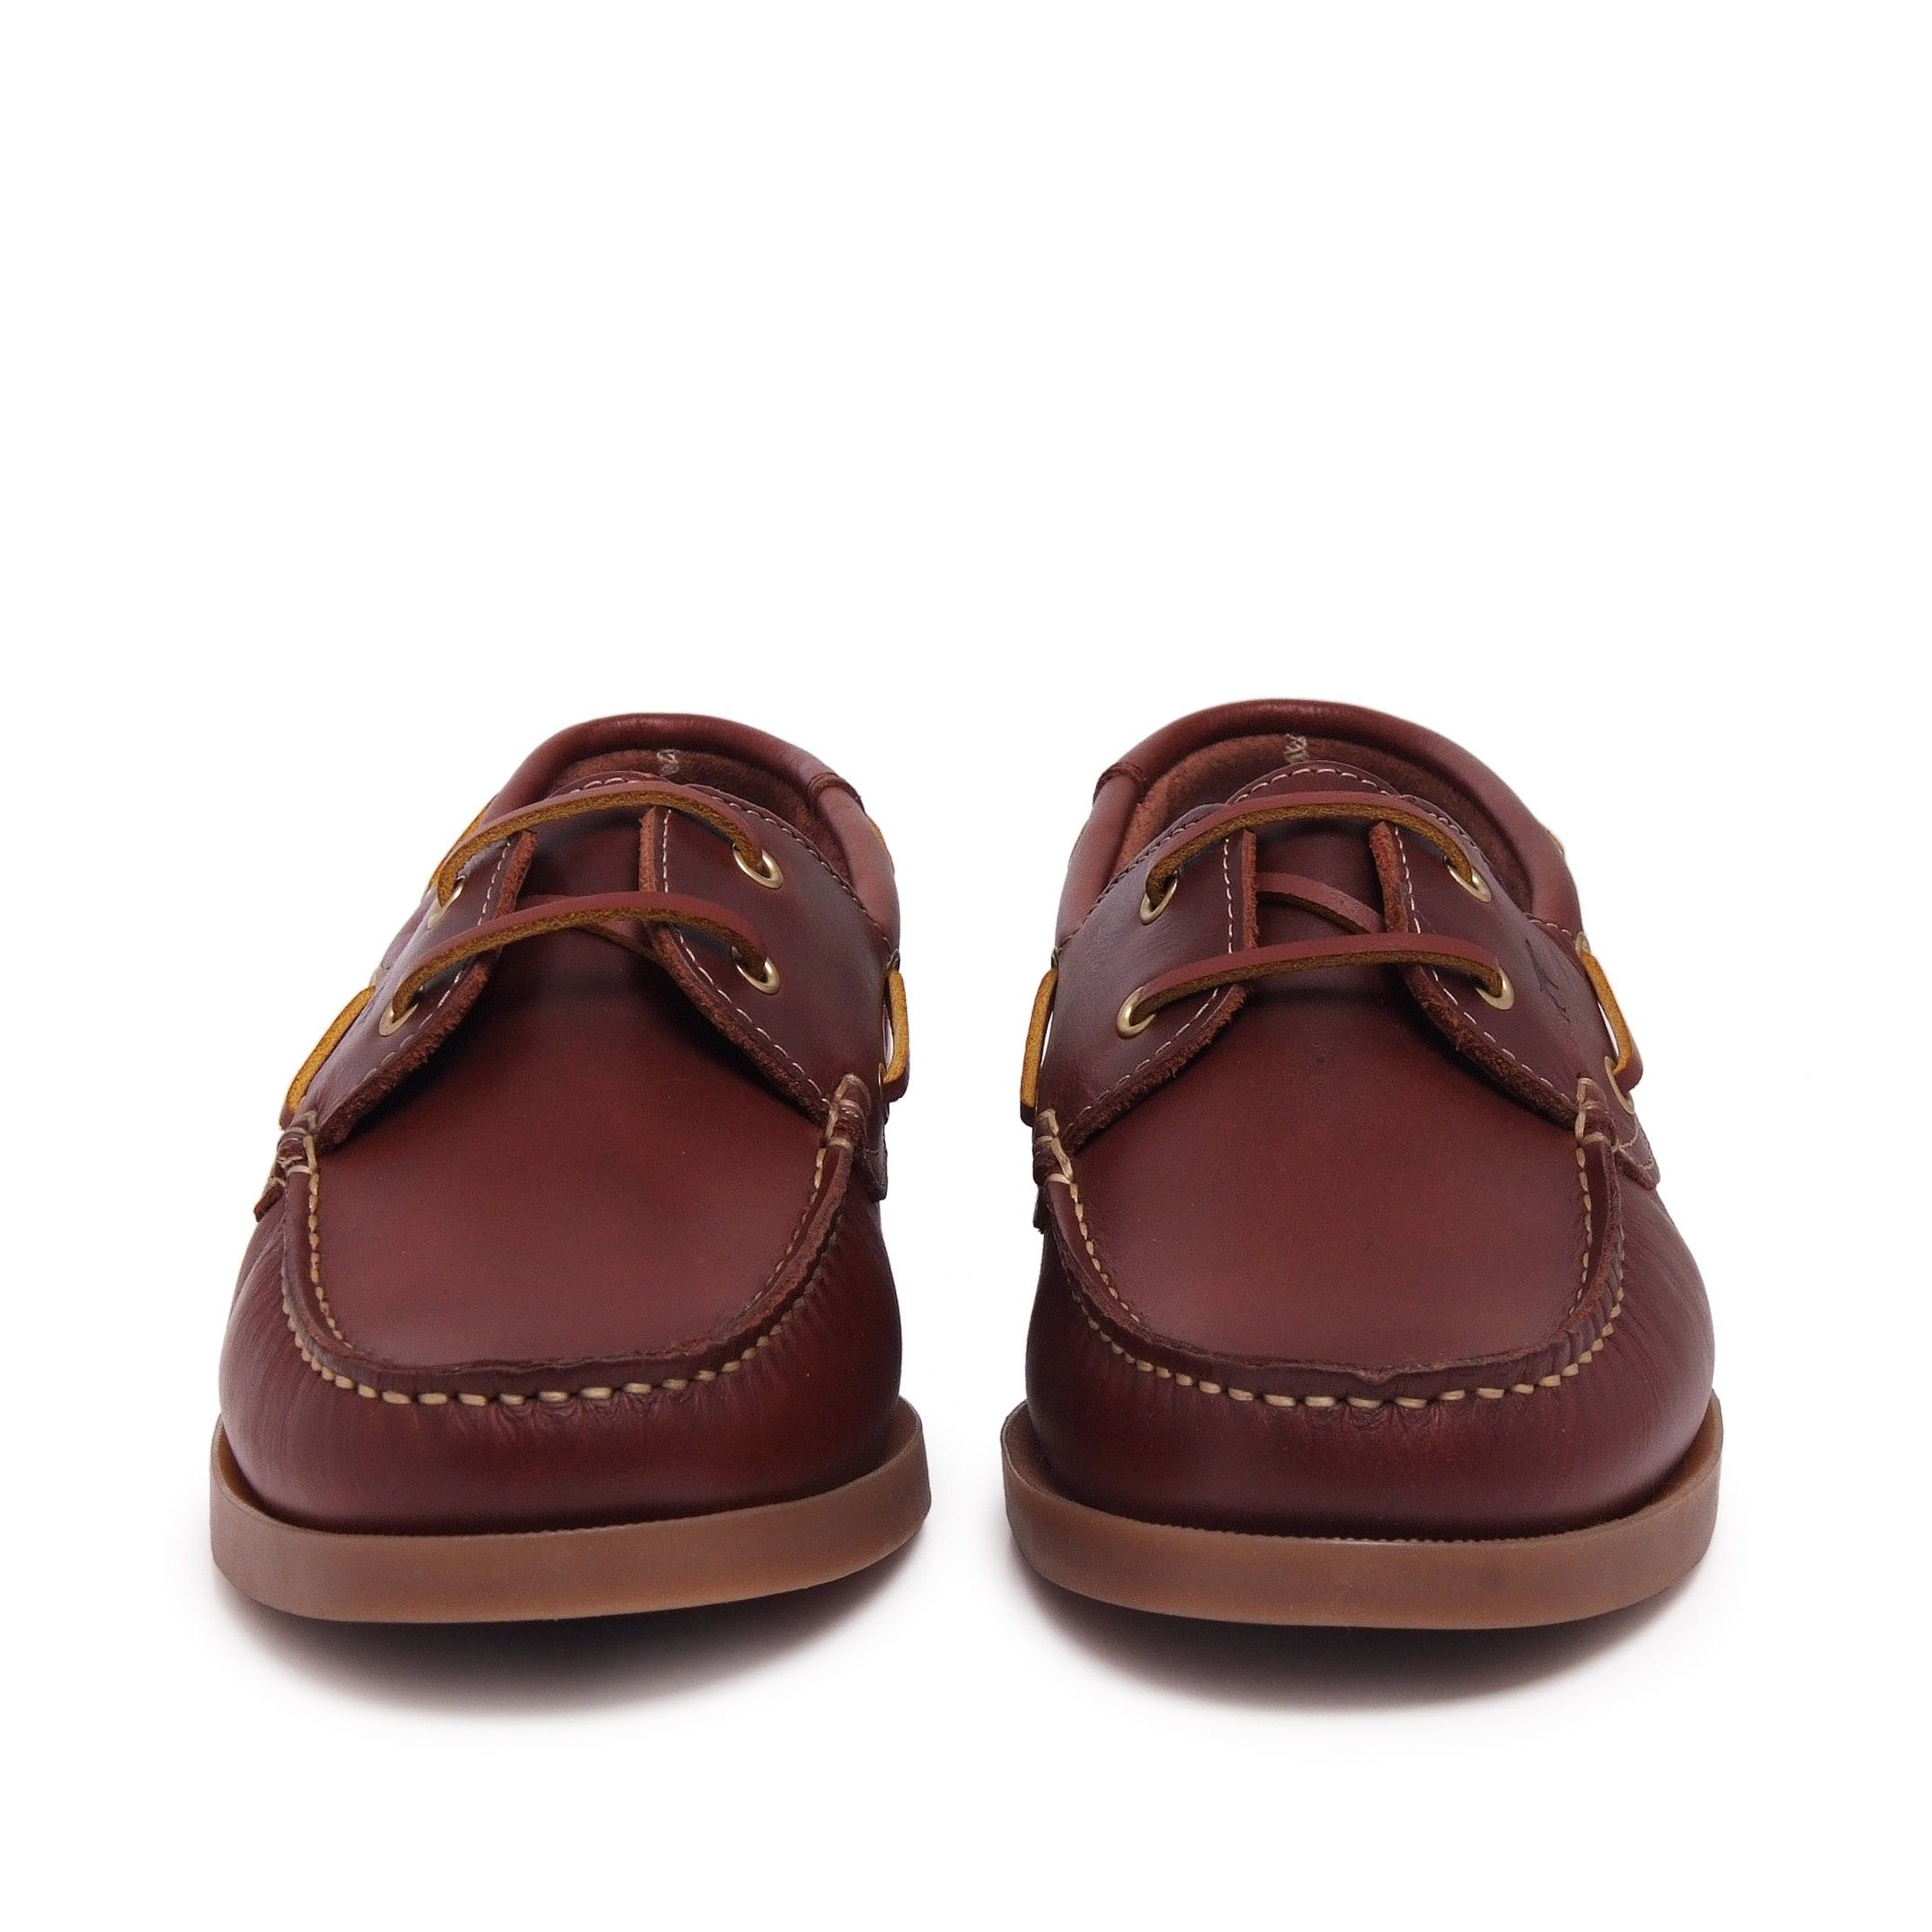 Leather Boat Shoes for Men Castellanisimos